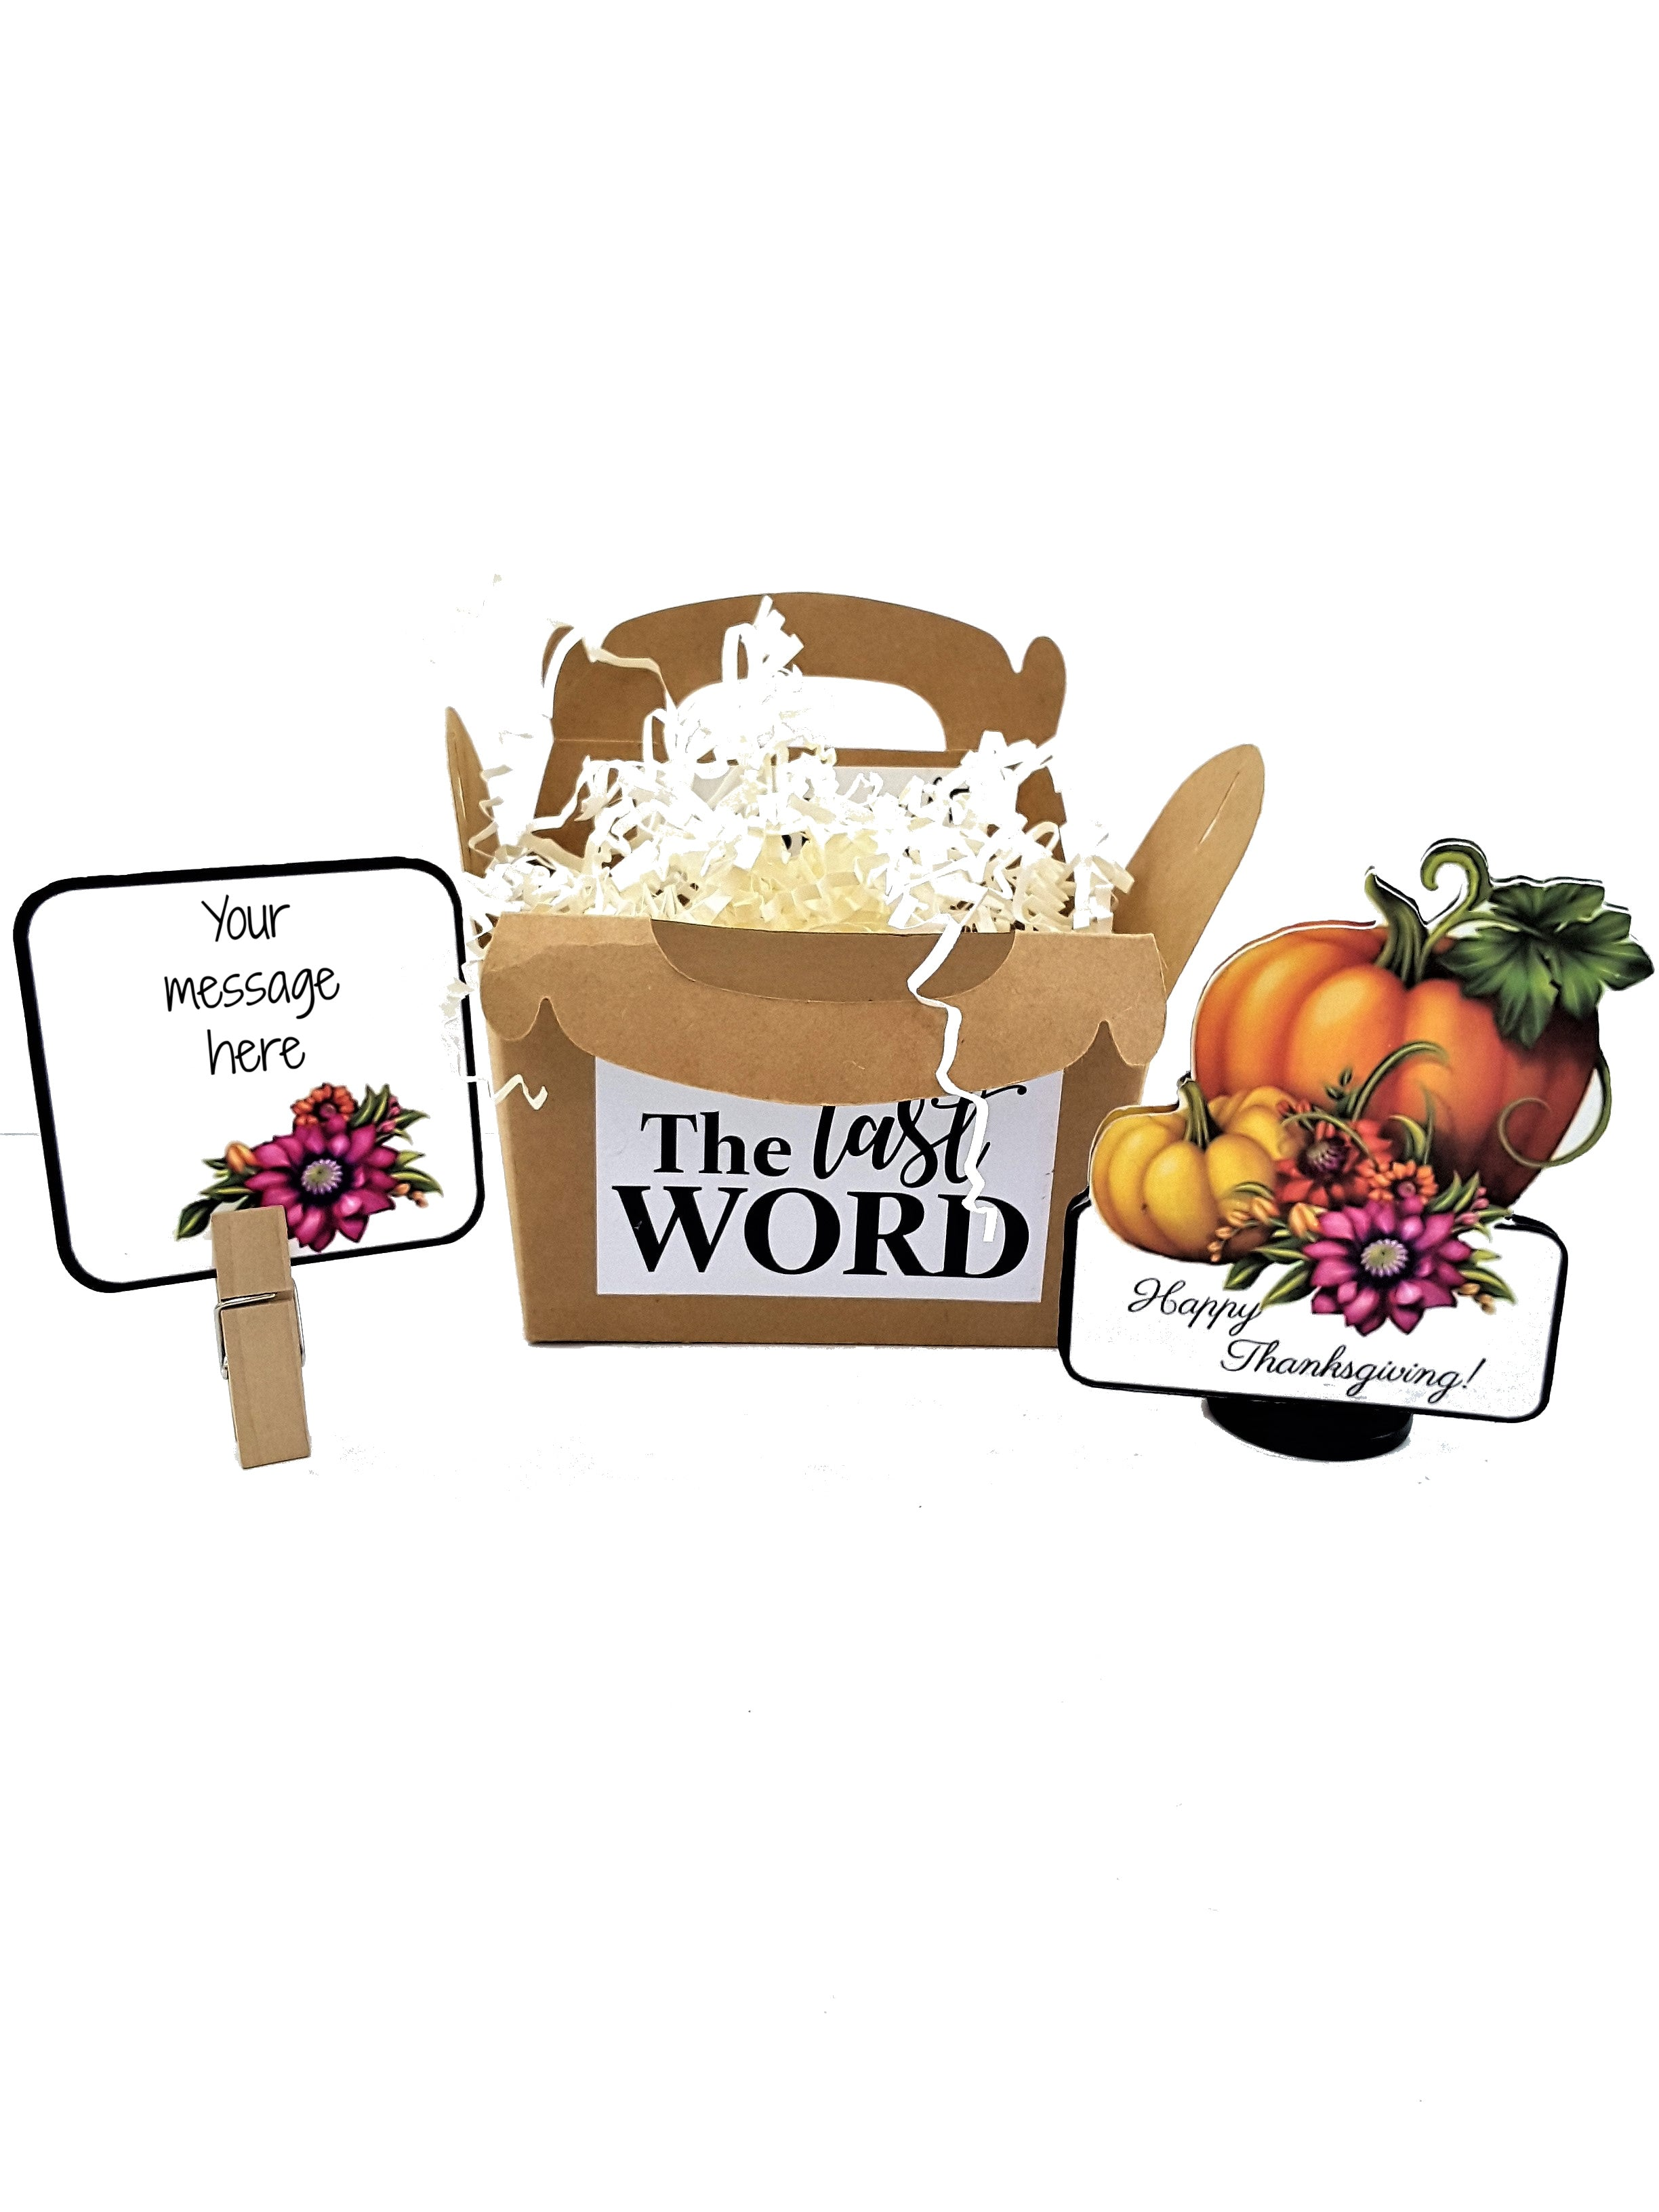 Happy Thanksgiving Pumpkin Stand Up Greeting Card Gift - TheLastWordBish.com